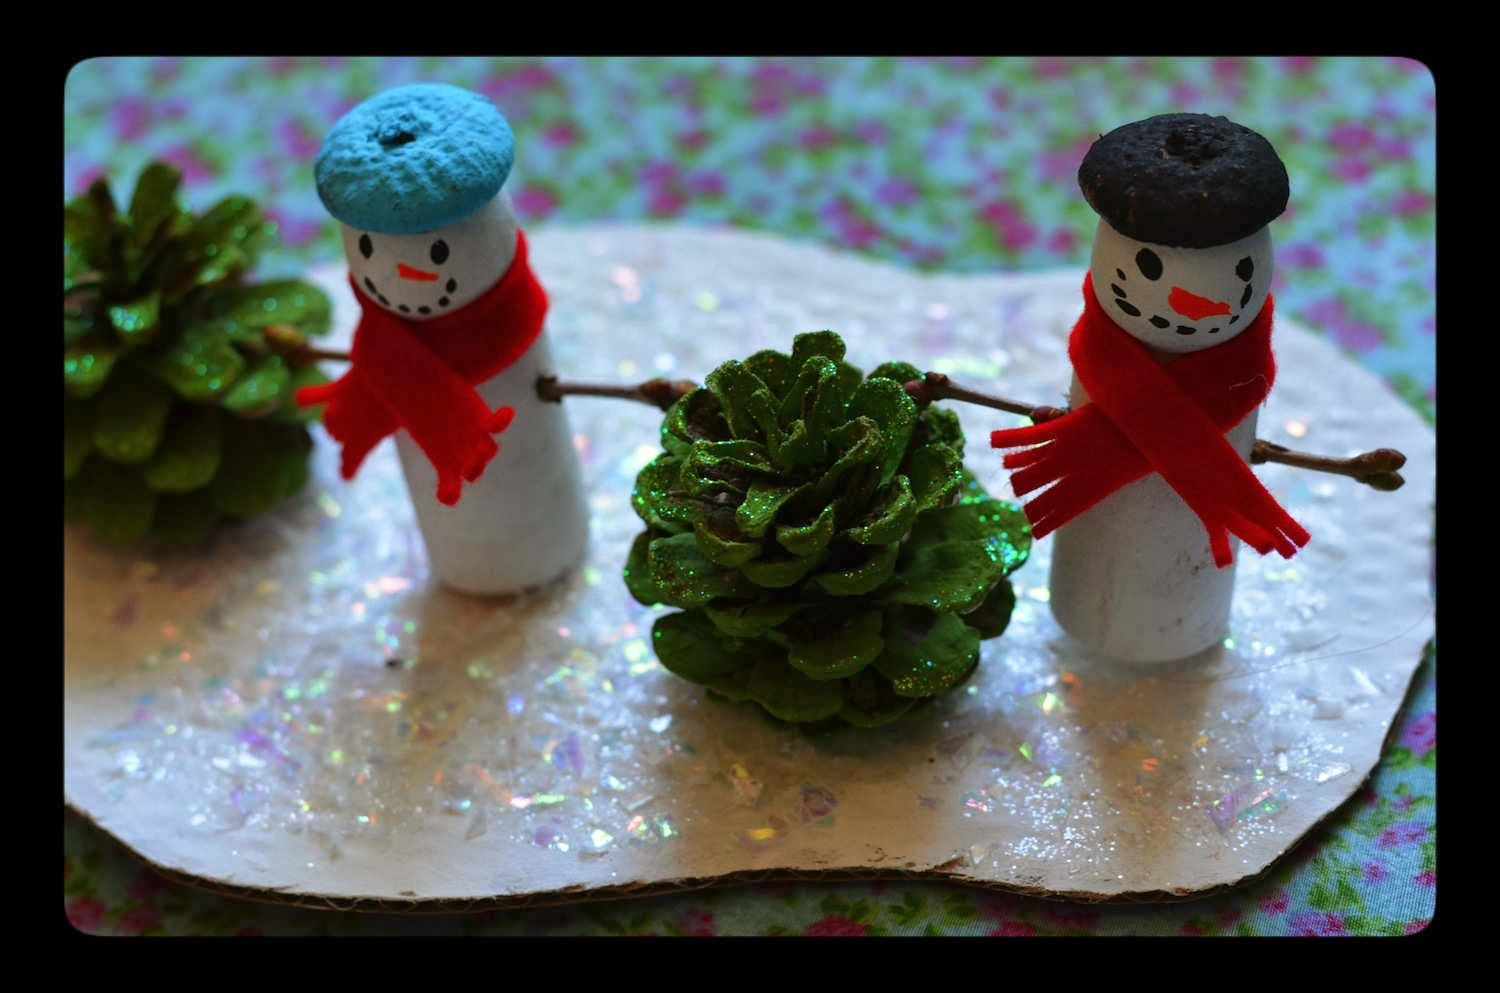 Twig and Toadstool: Winter - Snowman Playscape